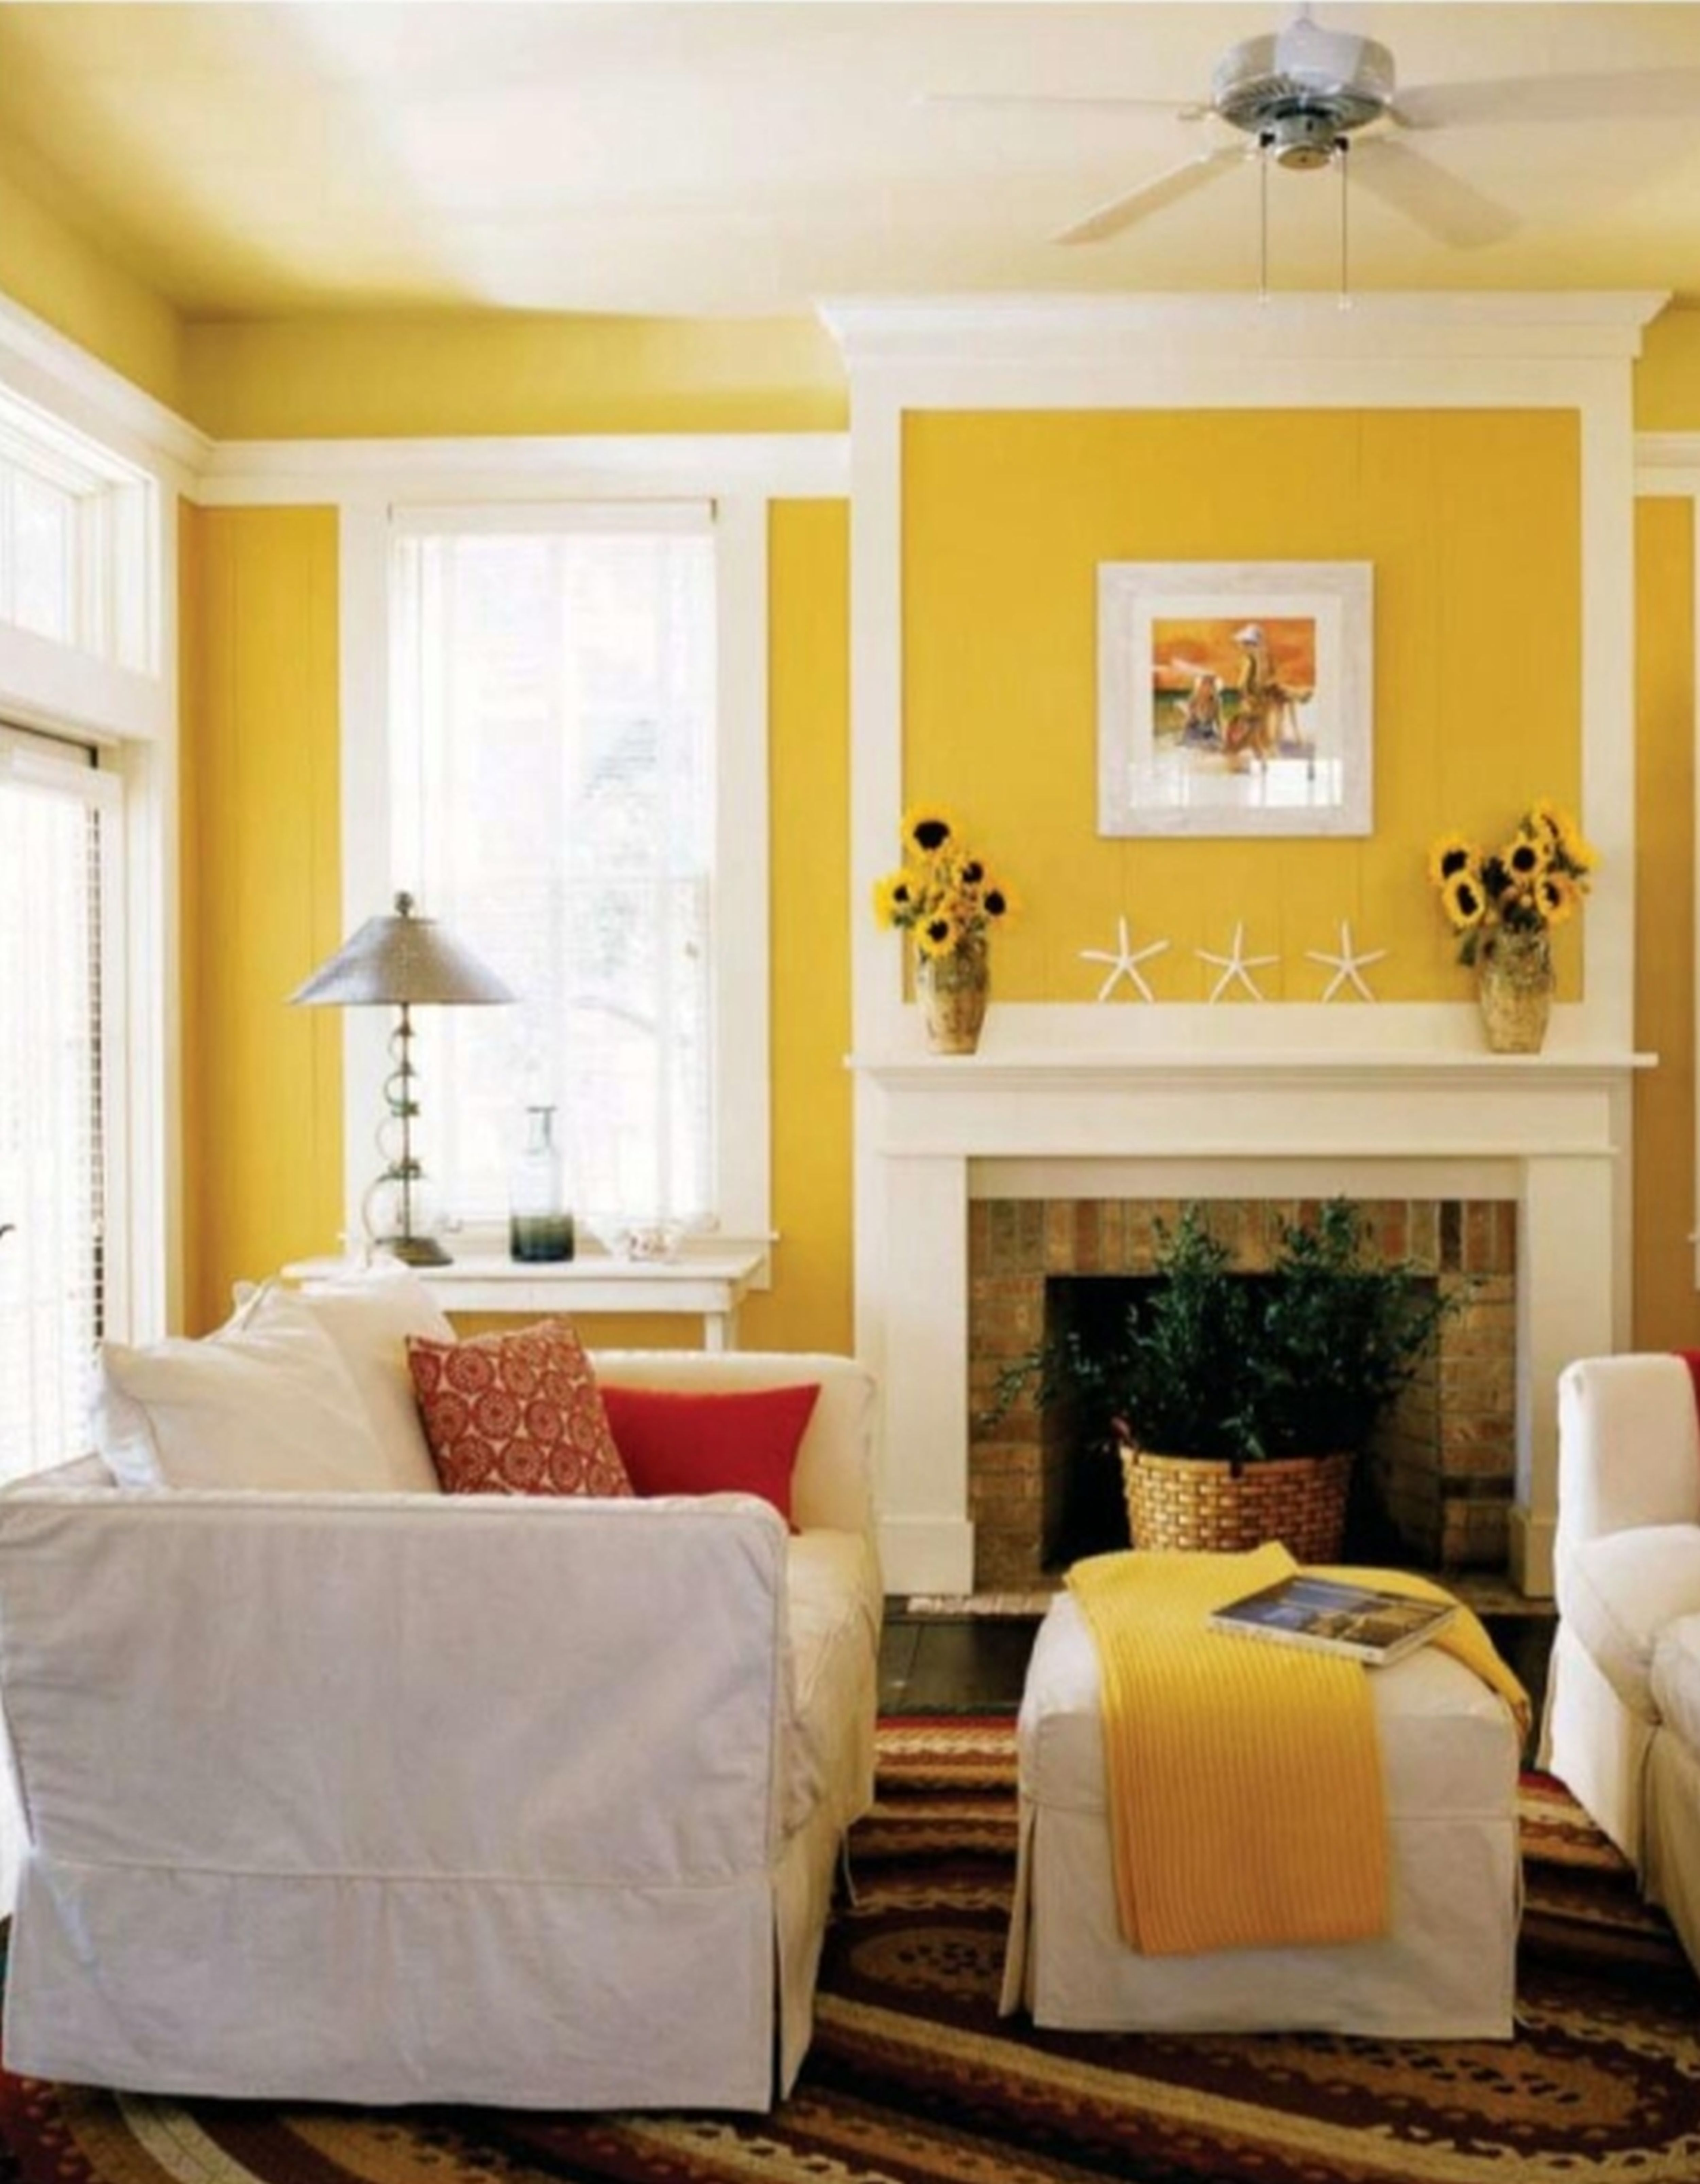 Beautify Your Home\'s Interior With These Handy Tips ** Visit the ...